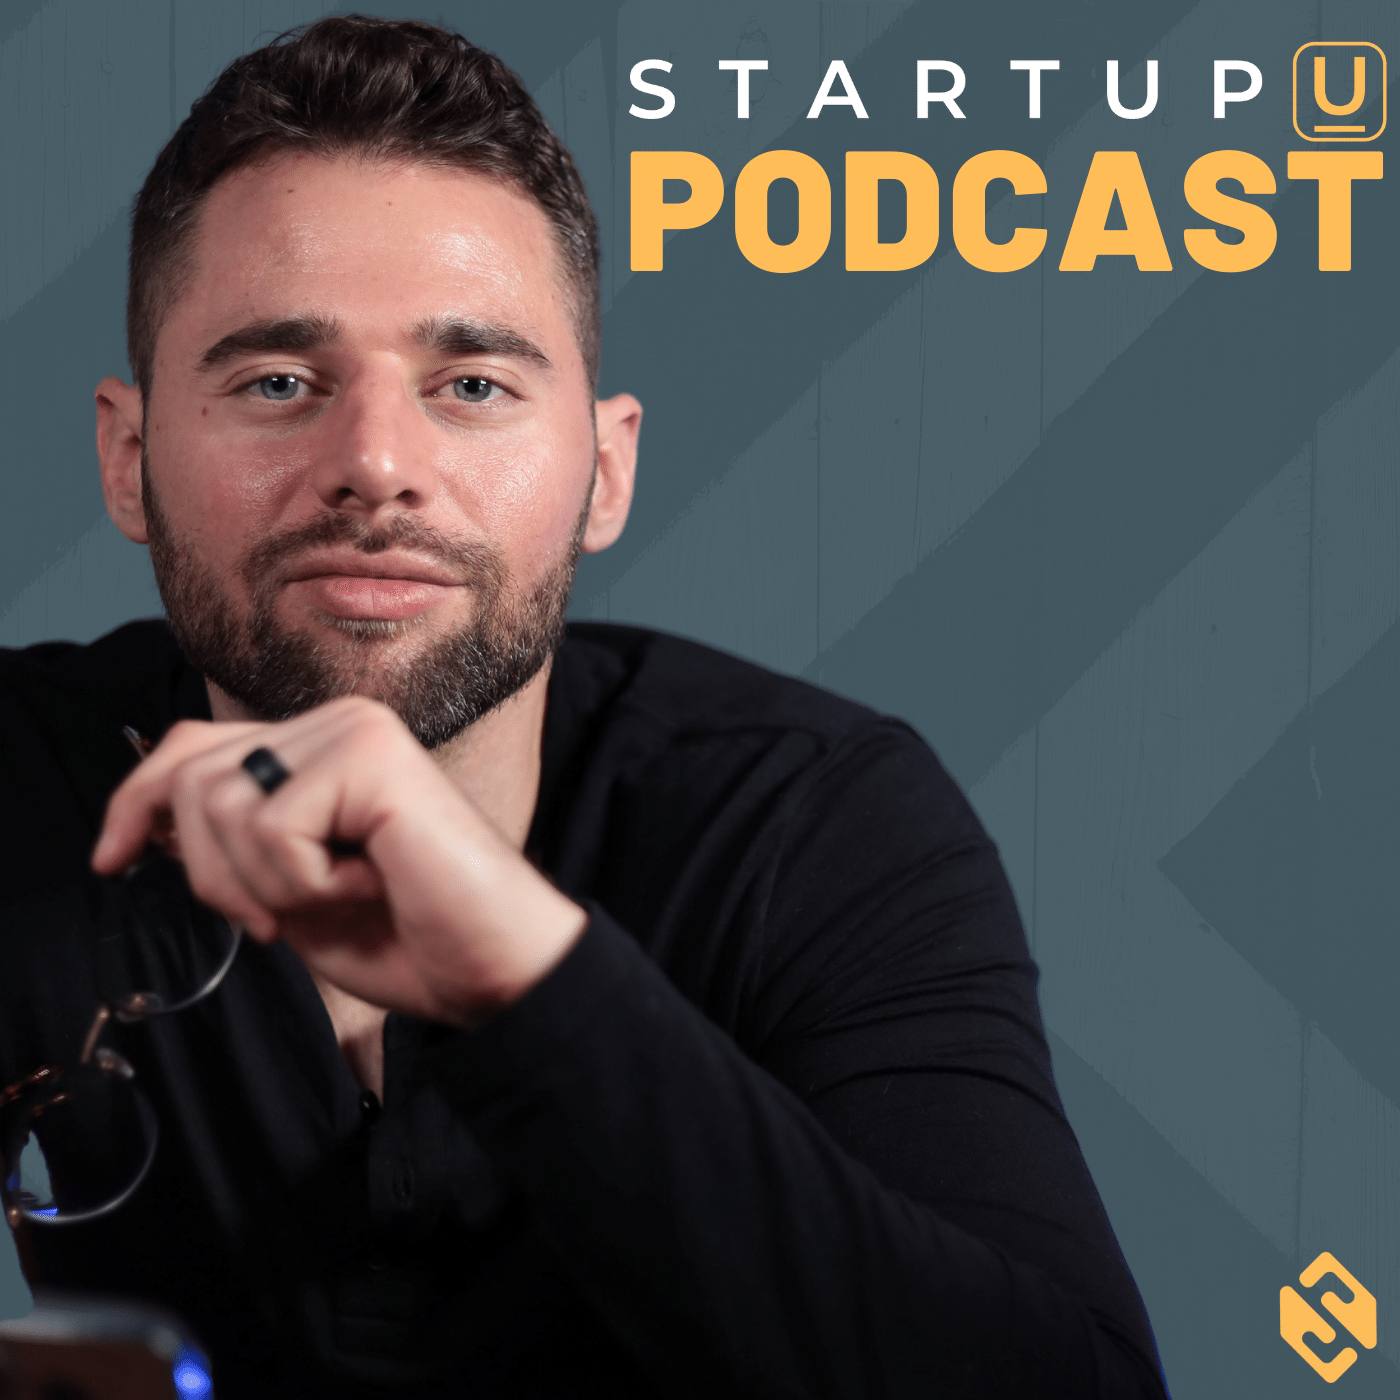 EP 319: The Superconductors of Success w/ Derek Loudermilk